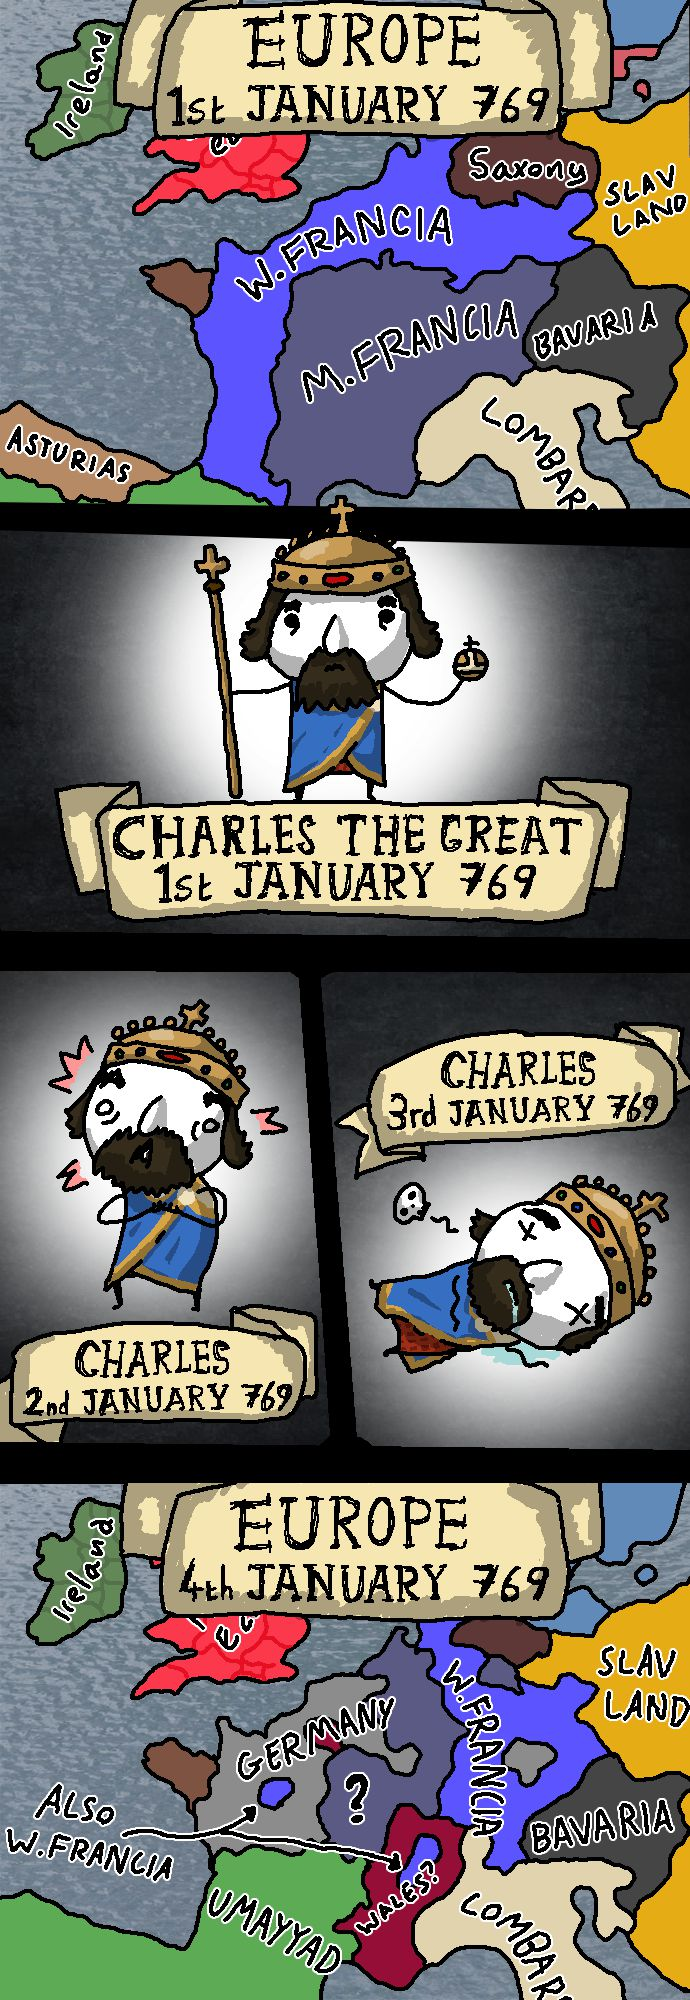 Crusader Kings 2 - Charlemagne